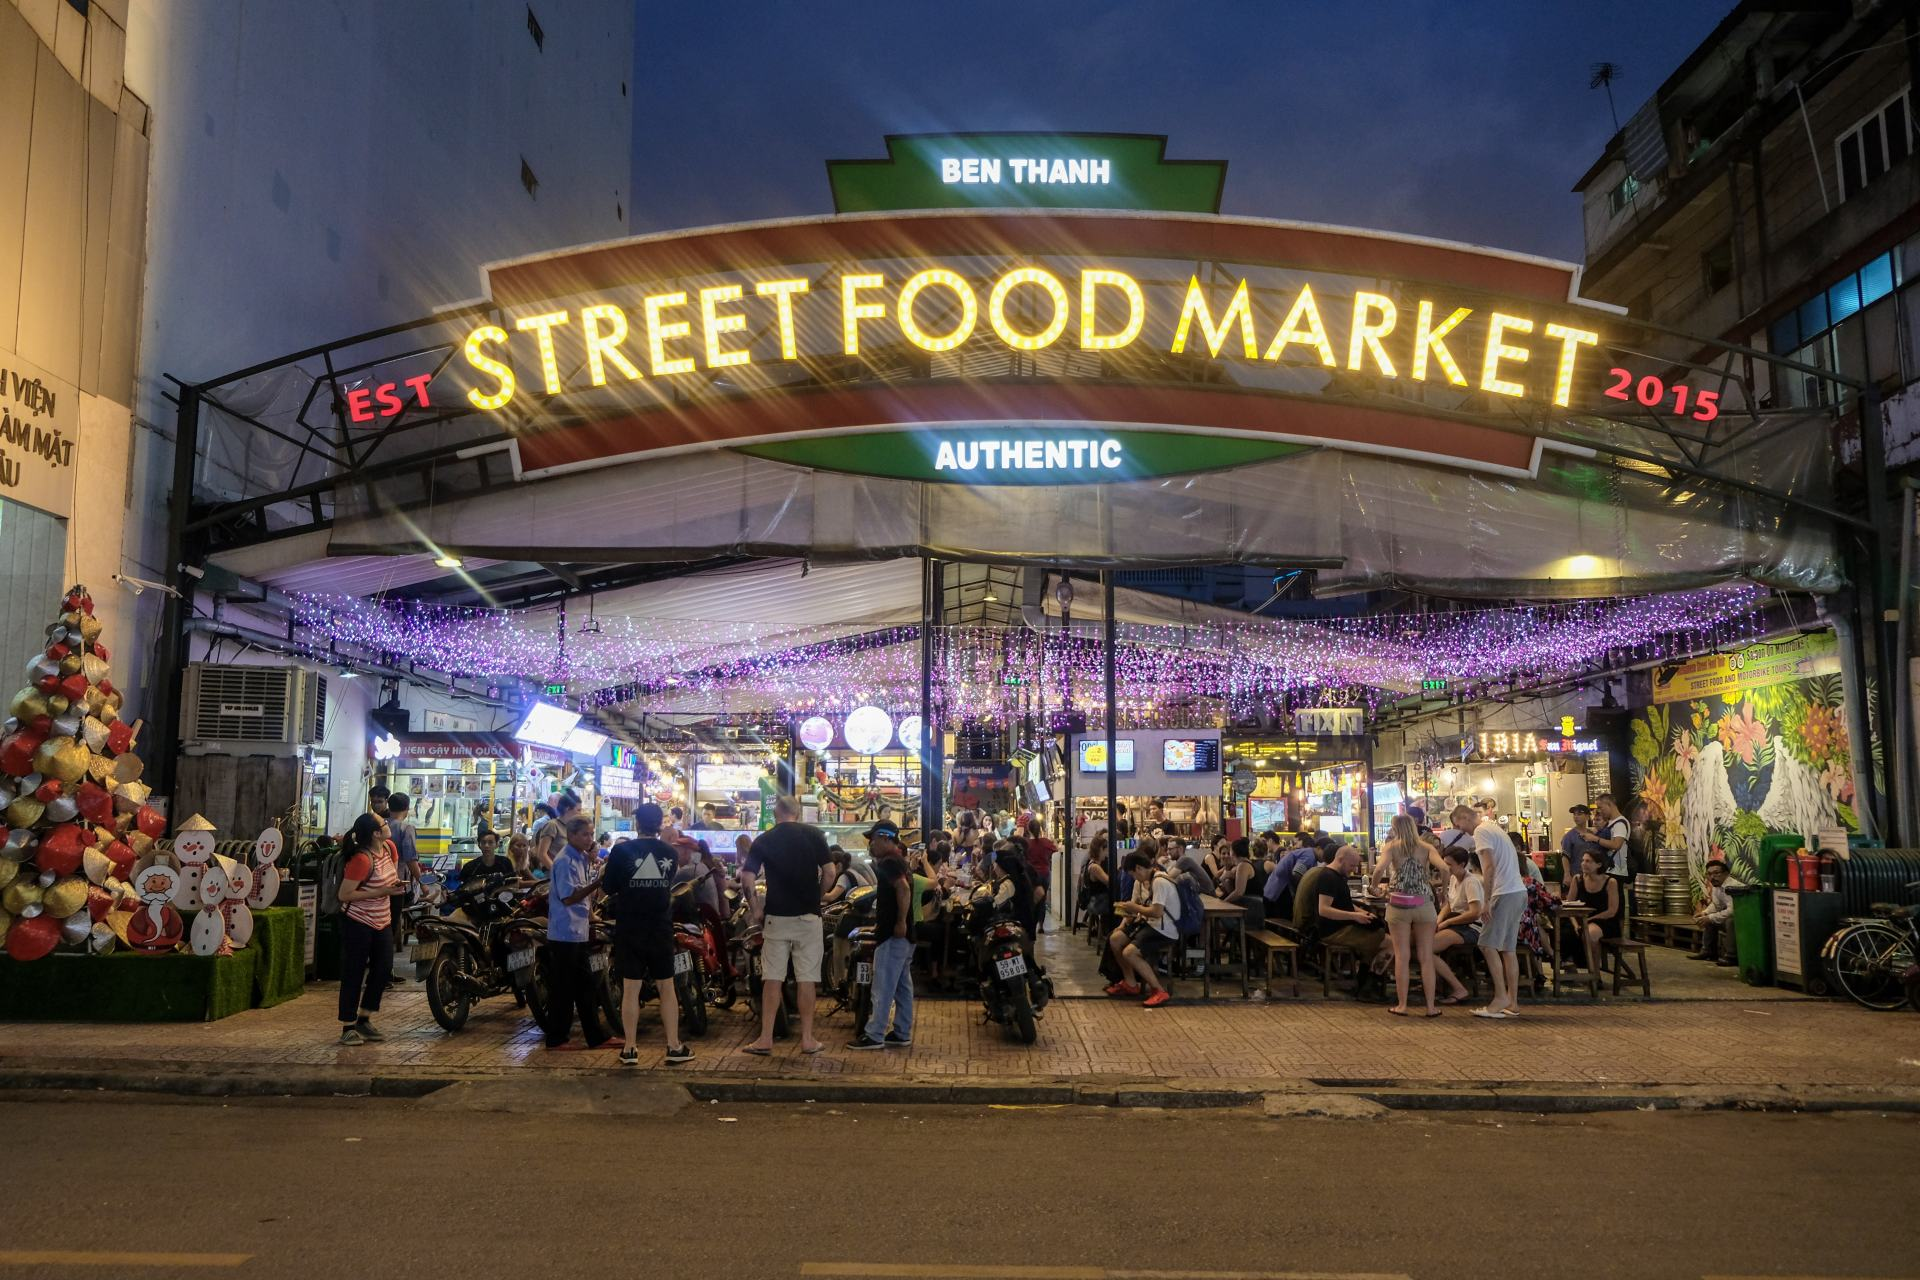 ben thanh street food market in ho chi minh